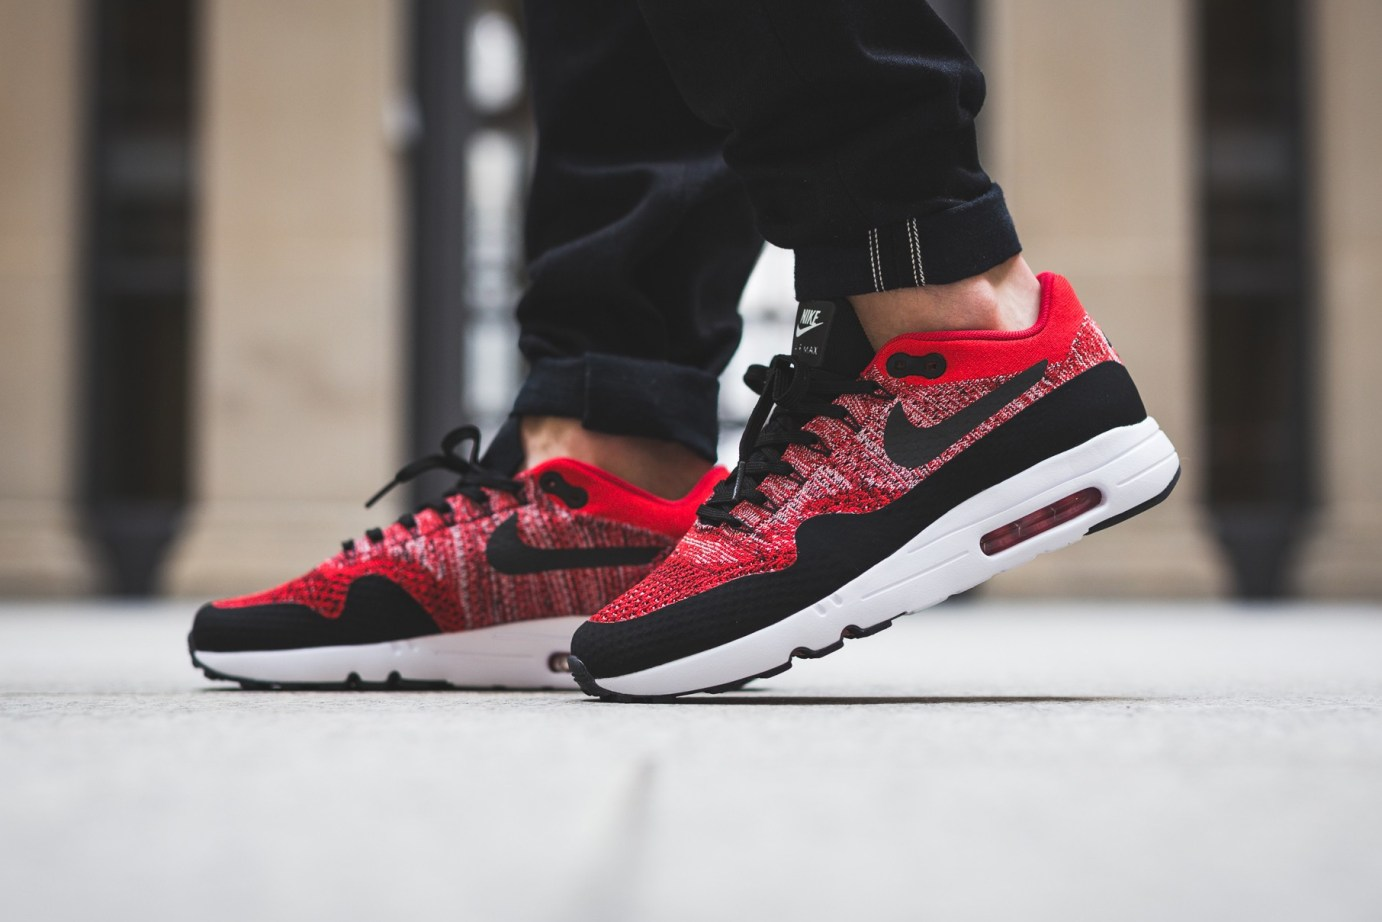 nike-air-max-1-ultra-2-0-flyknit-university-red-001